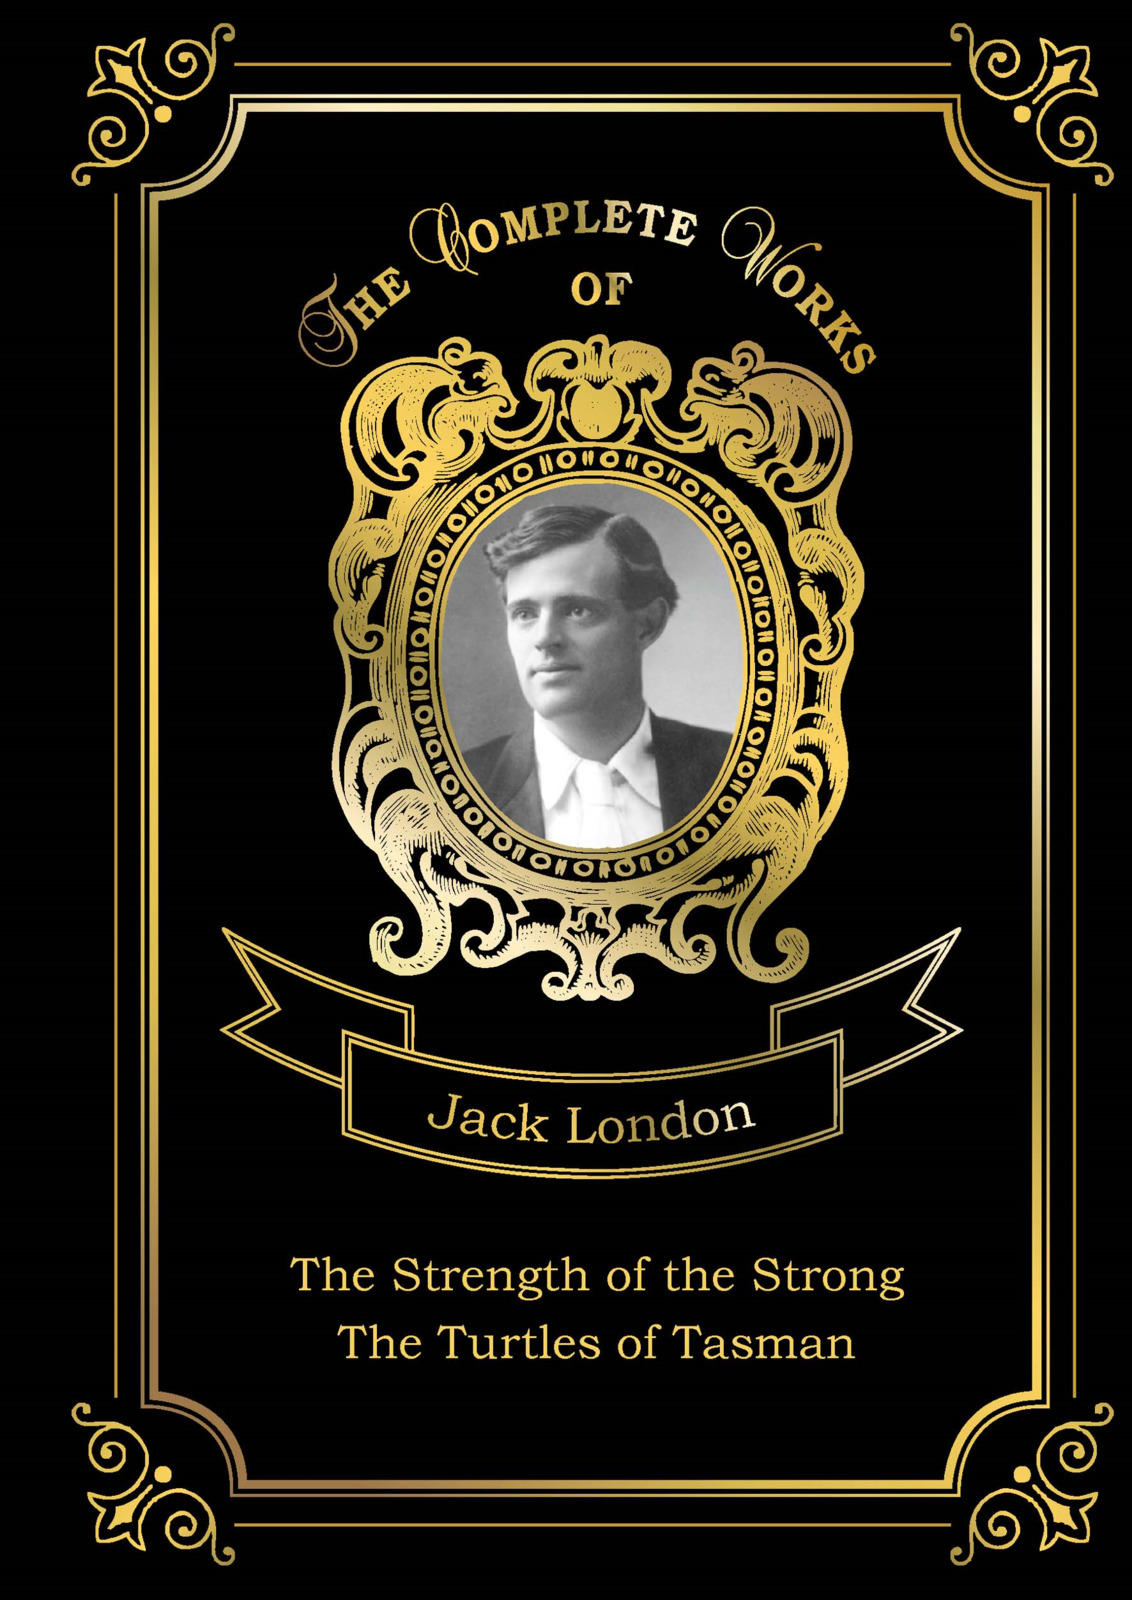 Jack London The Strength of the Strong: The Turtles of Tasman